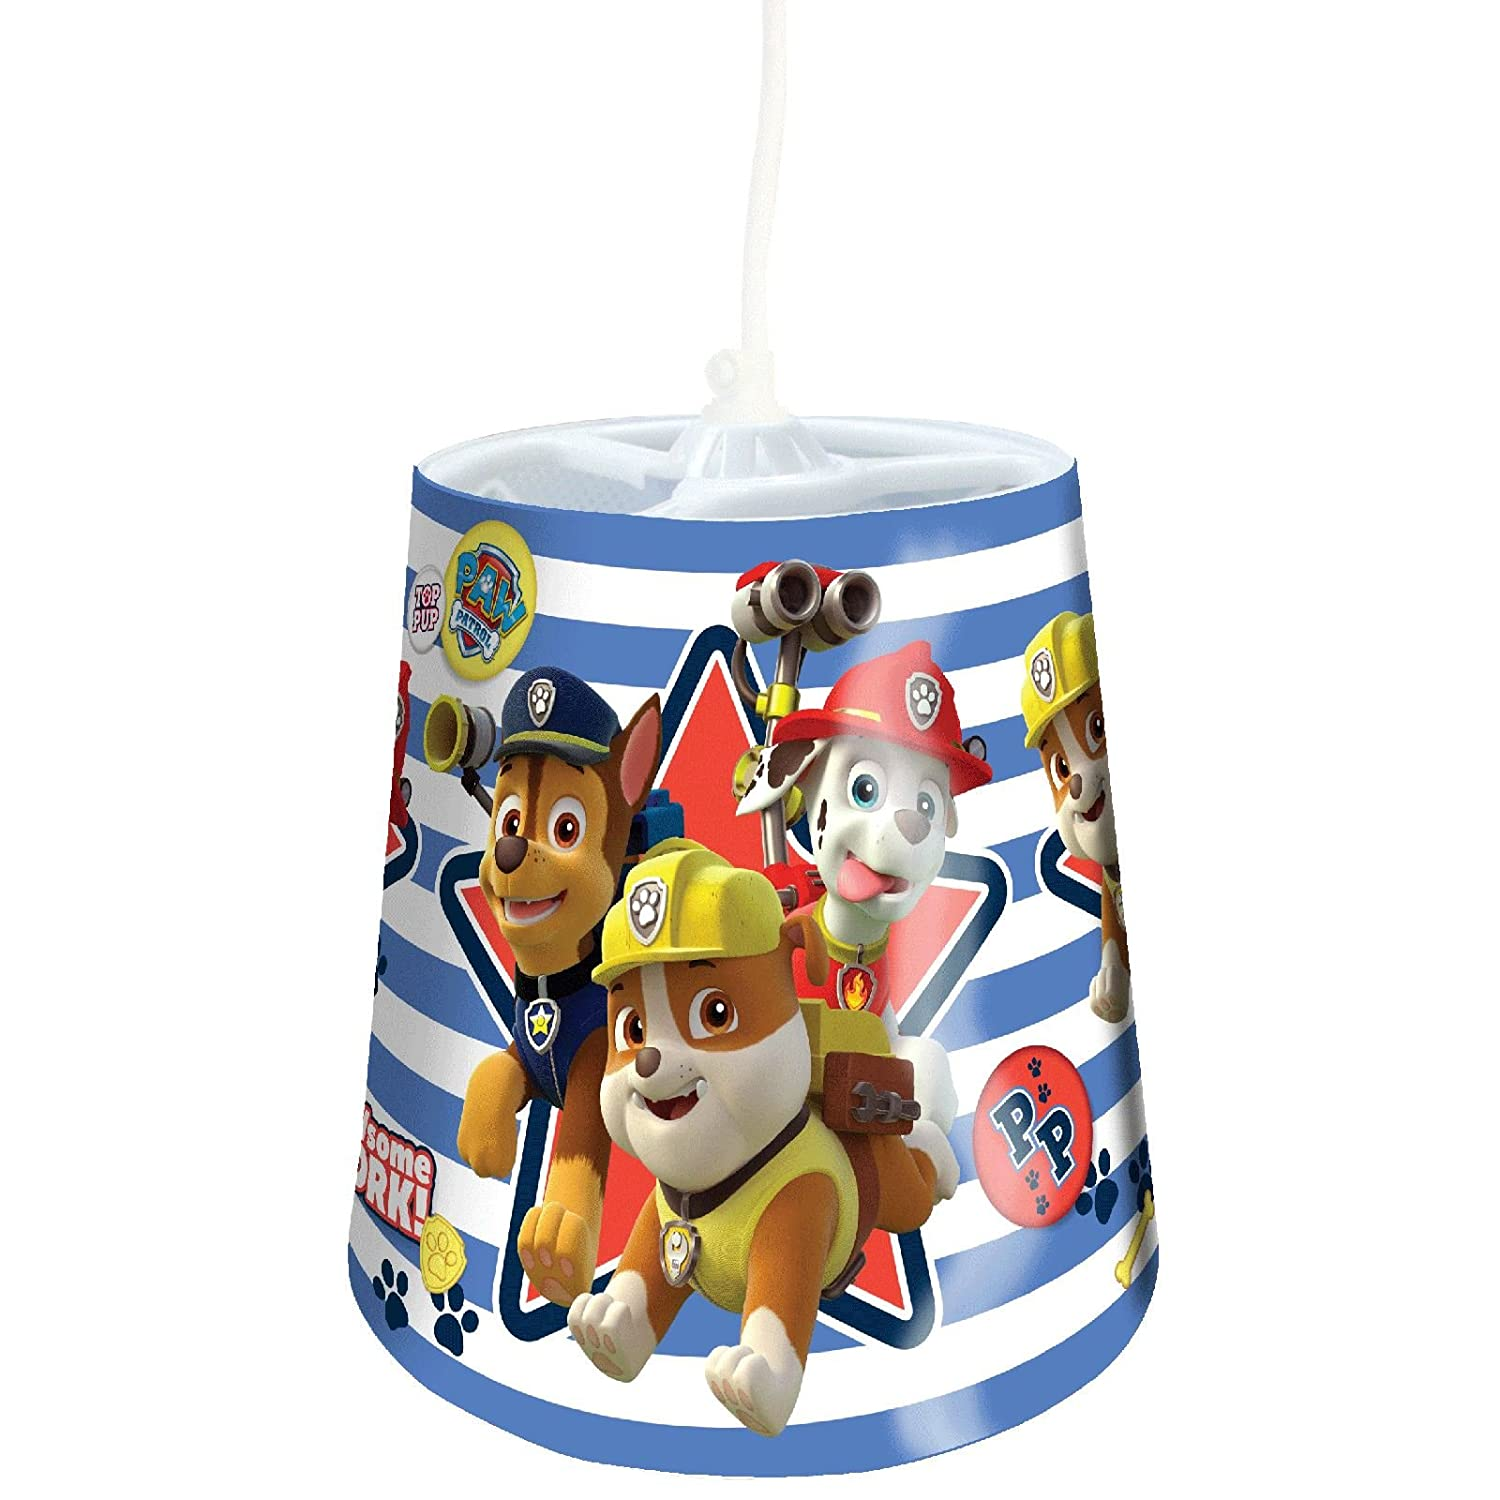 Amazon.com: Paw Patrol Tapered Ceiling Light Shade: Home & Kitchen